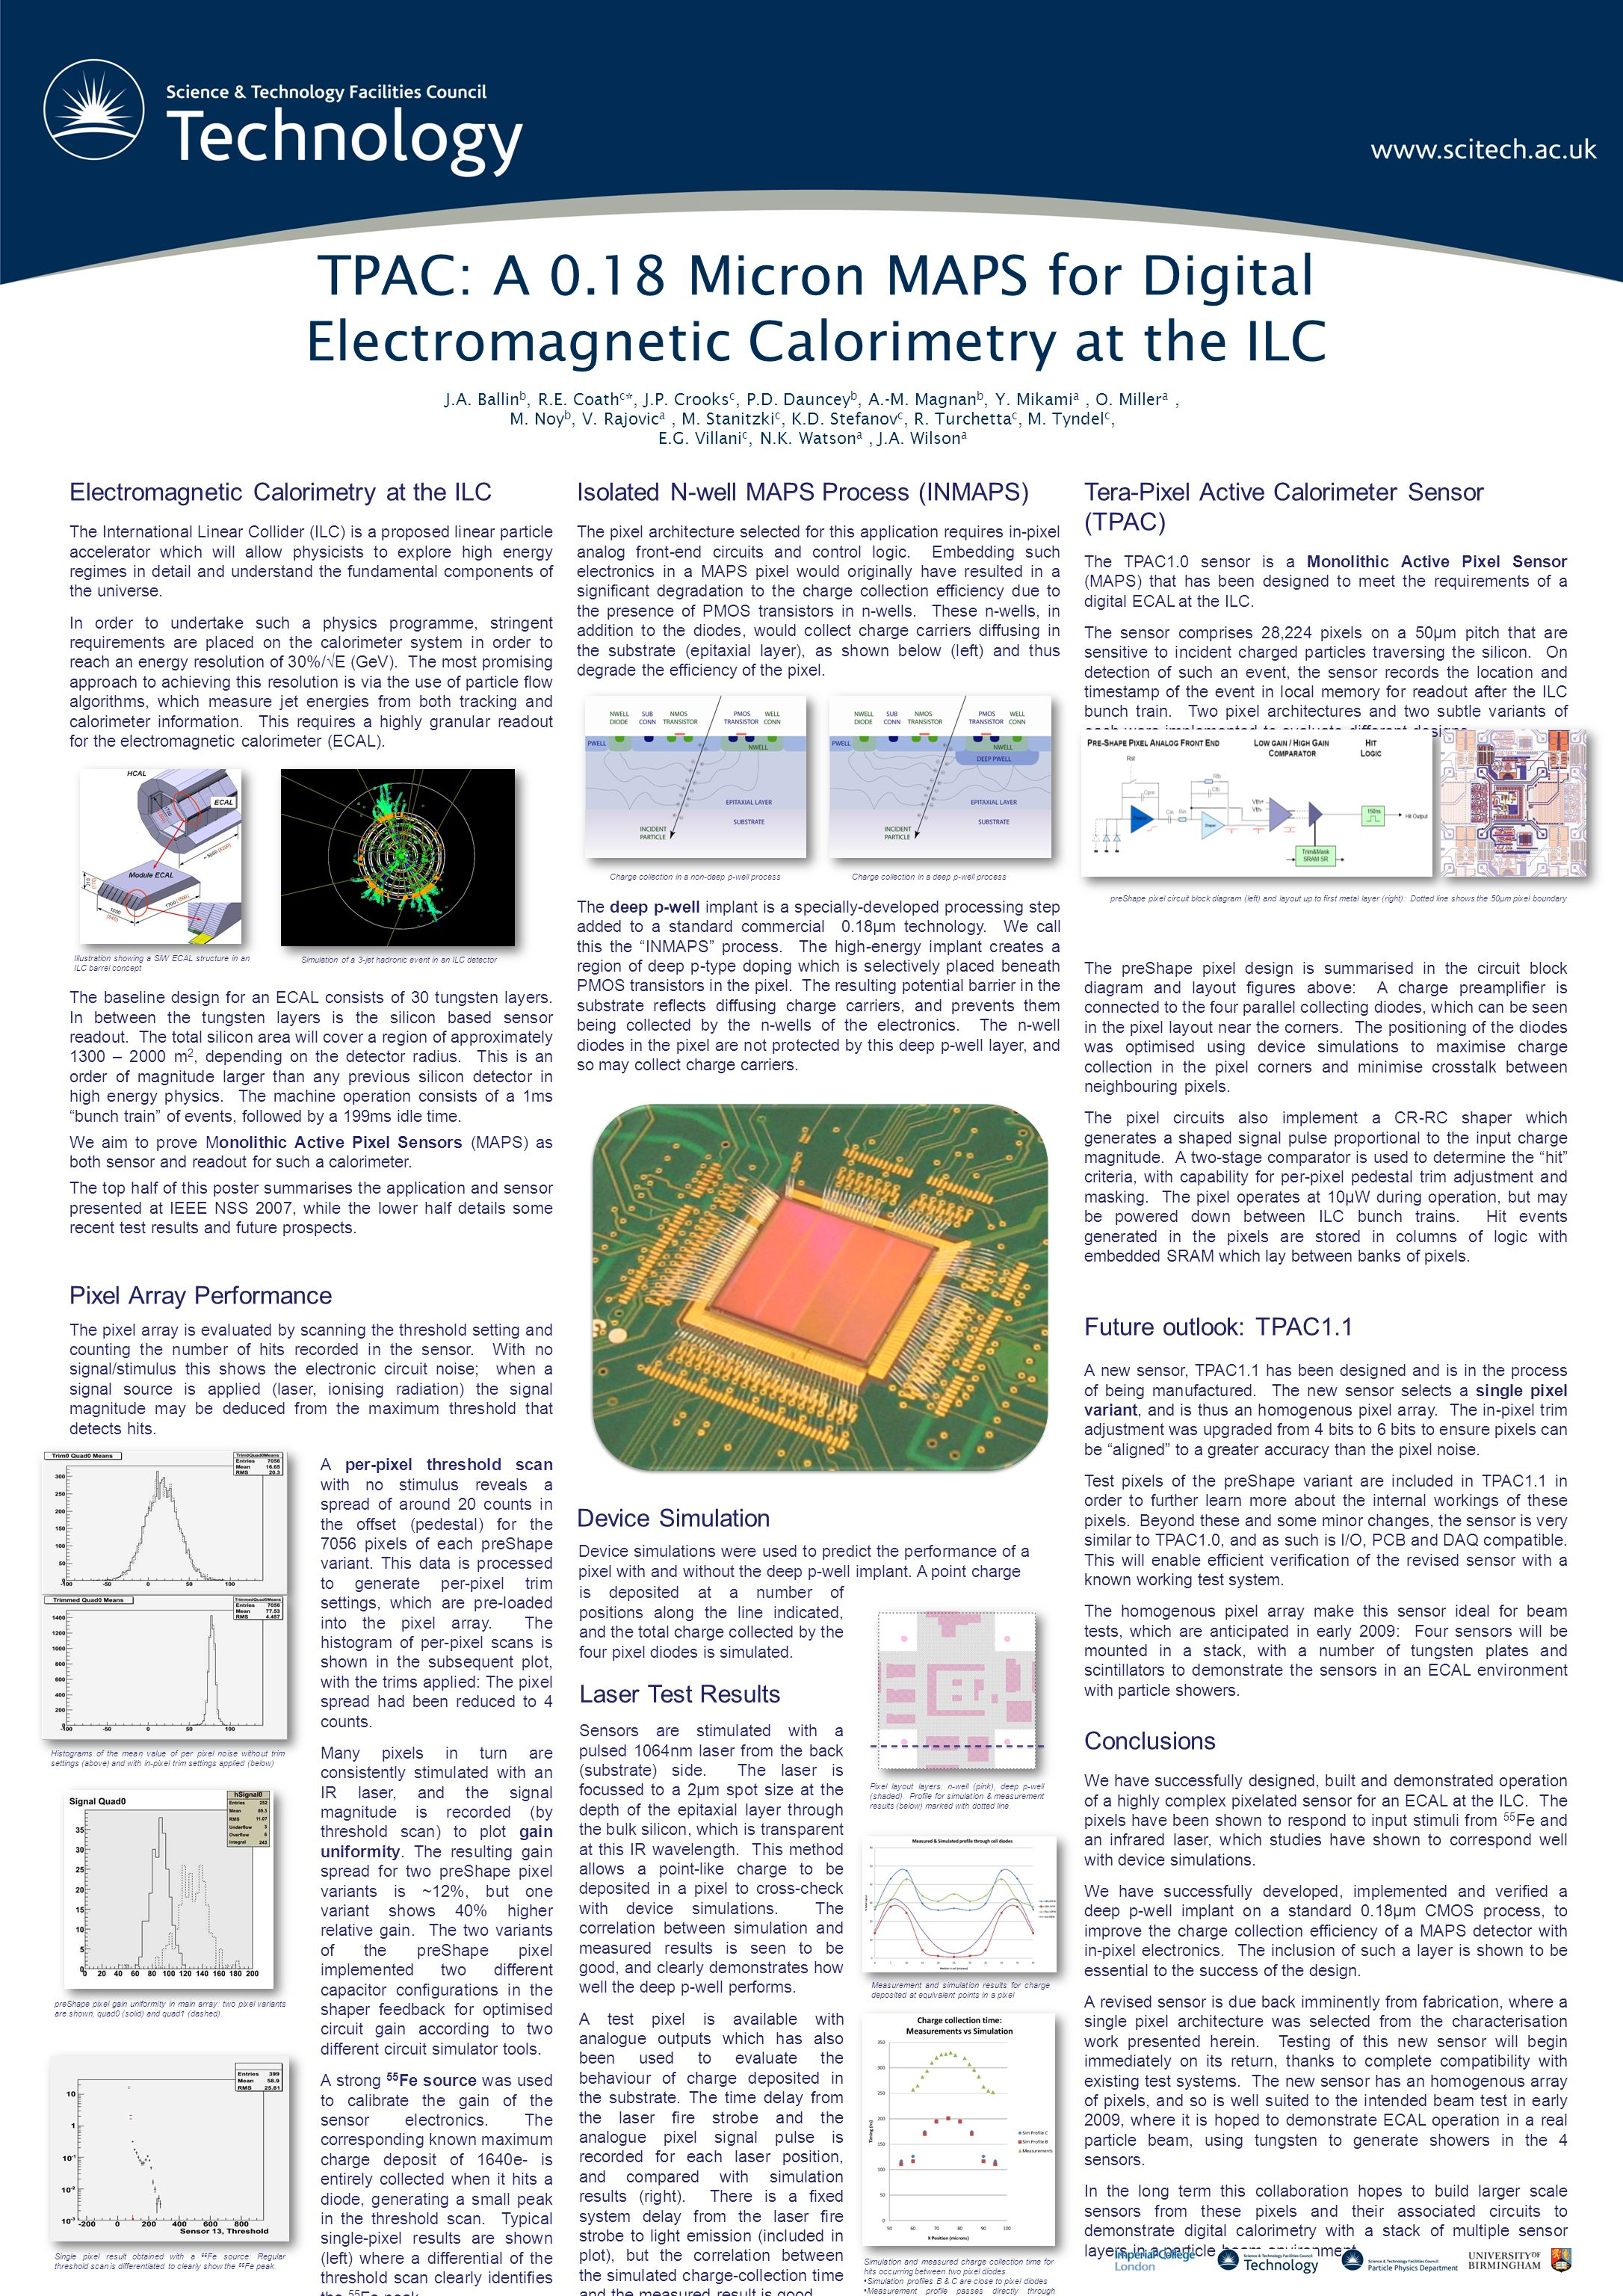 TPAC: A 0.18 Micron MAPS for Digital Electromagnetic Calorimetry at the ILC J.A. Ballin b, R.E. Coath c *, J.P. Crooks c, P.D. Dauncey b, A.-M. Magnan